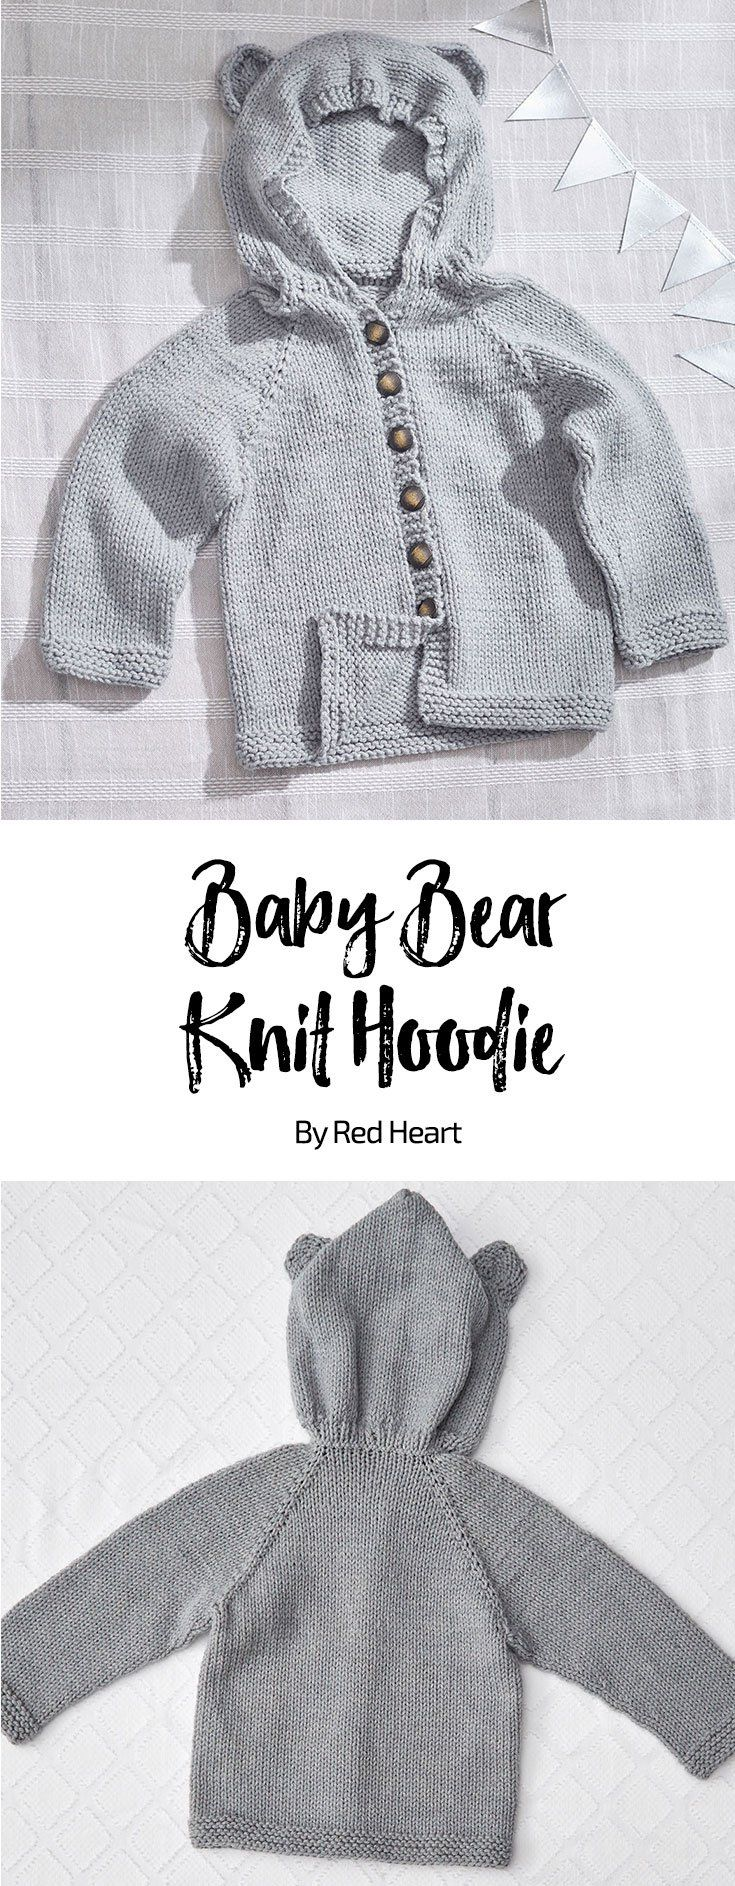 967136674aaa Baby Bear Knit Hoodie free knit pattern in Bunches of Hugs yarn. Your sweet  little one will be as huggable as can be in this cozy hoodie.